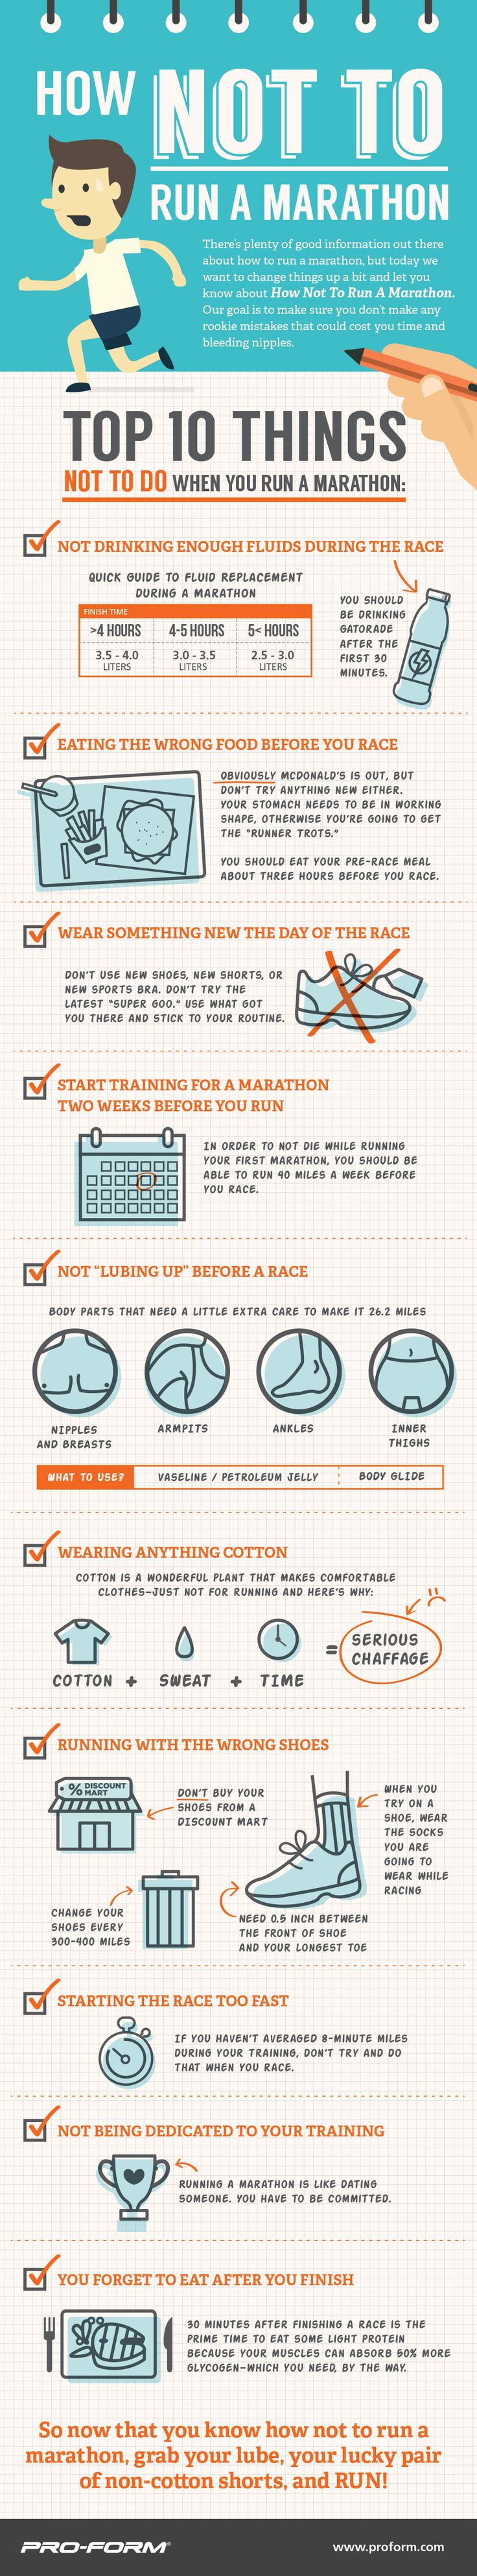 Top 10 List: How NOT to Run a Marathon - My No-Guilt Life | My No-Guilt Life